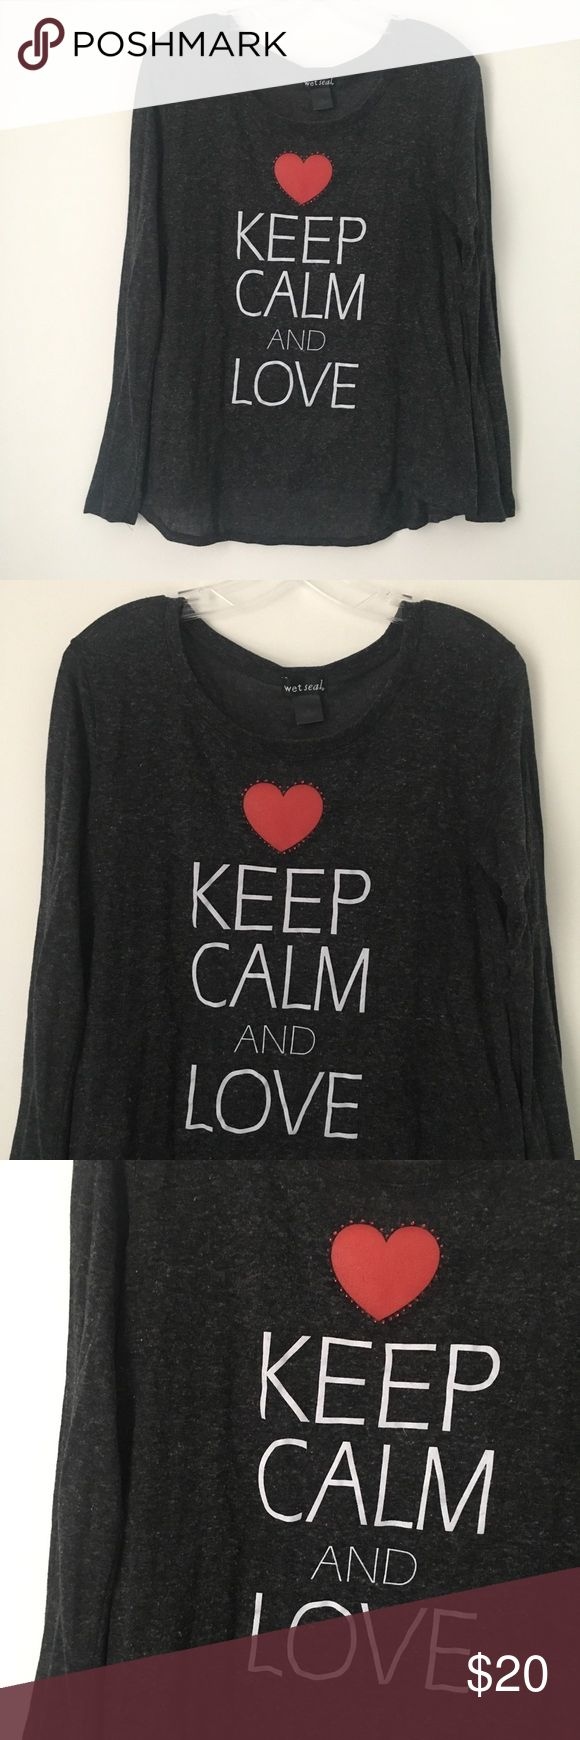 """KEEP CALM AND LOVE RHINESTONE HEART TEE SHIRT TOP! RARE - Gray / White / Red Faux Rhinestone Embellished Heart Love Valentine's Day """"KEEP CALM AND LOVE"""" Cute Long Sleeve High Low Hem Knit Pullover Tee Shirt Top.  Brand new. Never used. Material has INTENTIONAL pilling. NO flaws.  Tagged as XL but BEST FOR WOMEN'S MEDIUM or LARGE INSTEAD!  •Chest- 19"""" across •Length (shoulder to bottom)- 23.5"""" long (FRONT) // 26"""" long (BACK)  75% Polyester + 25% Rayon.  •NO holds, returns or refunds allowed…"""